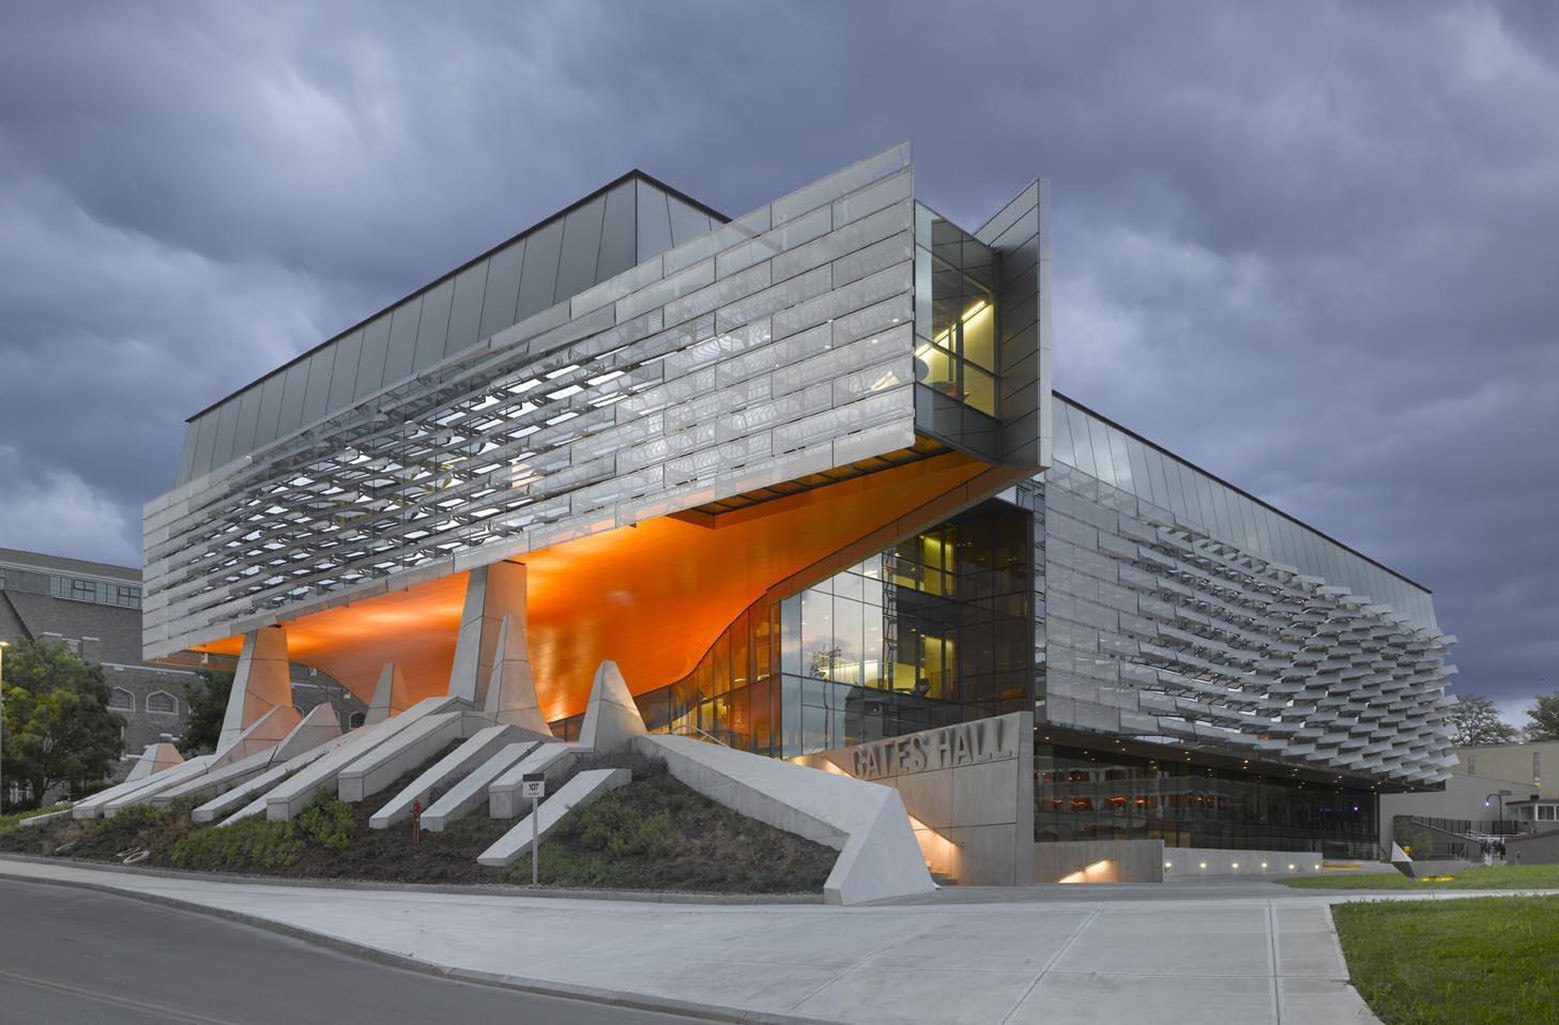 bill & melinda gates hall / morphosis architects | archdaily